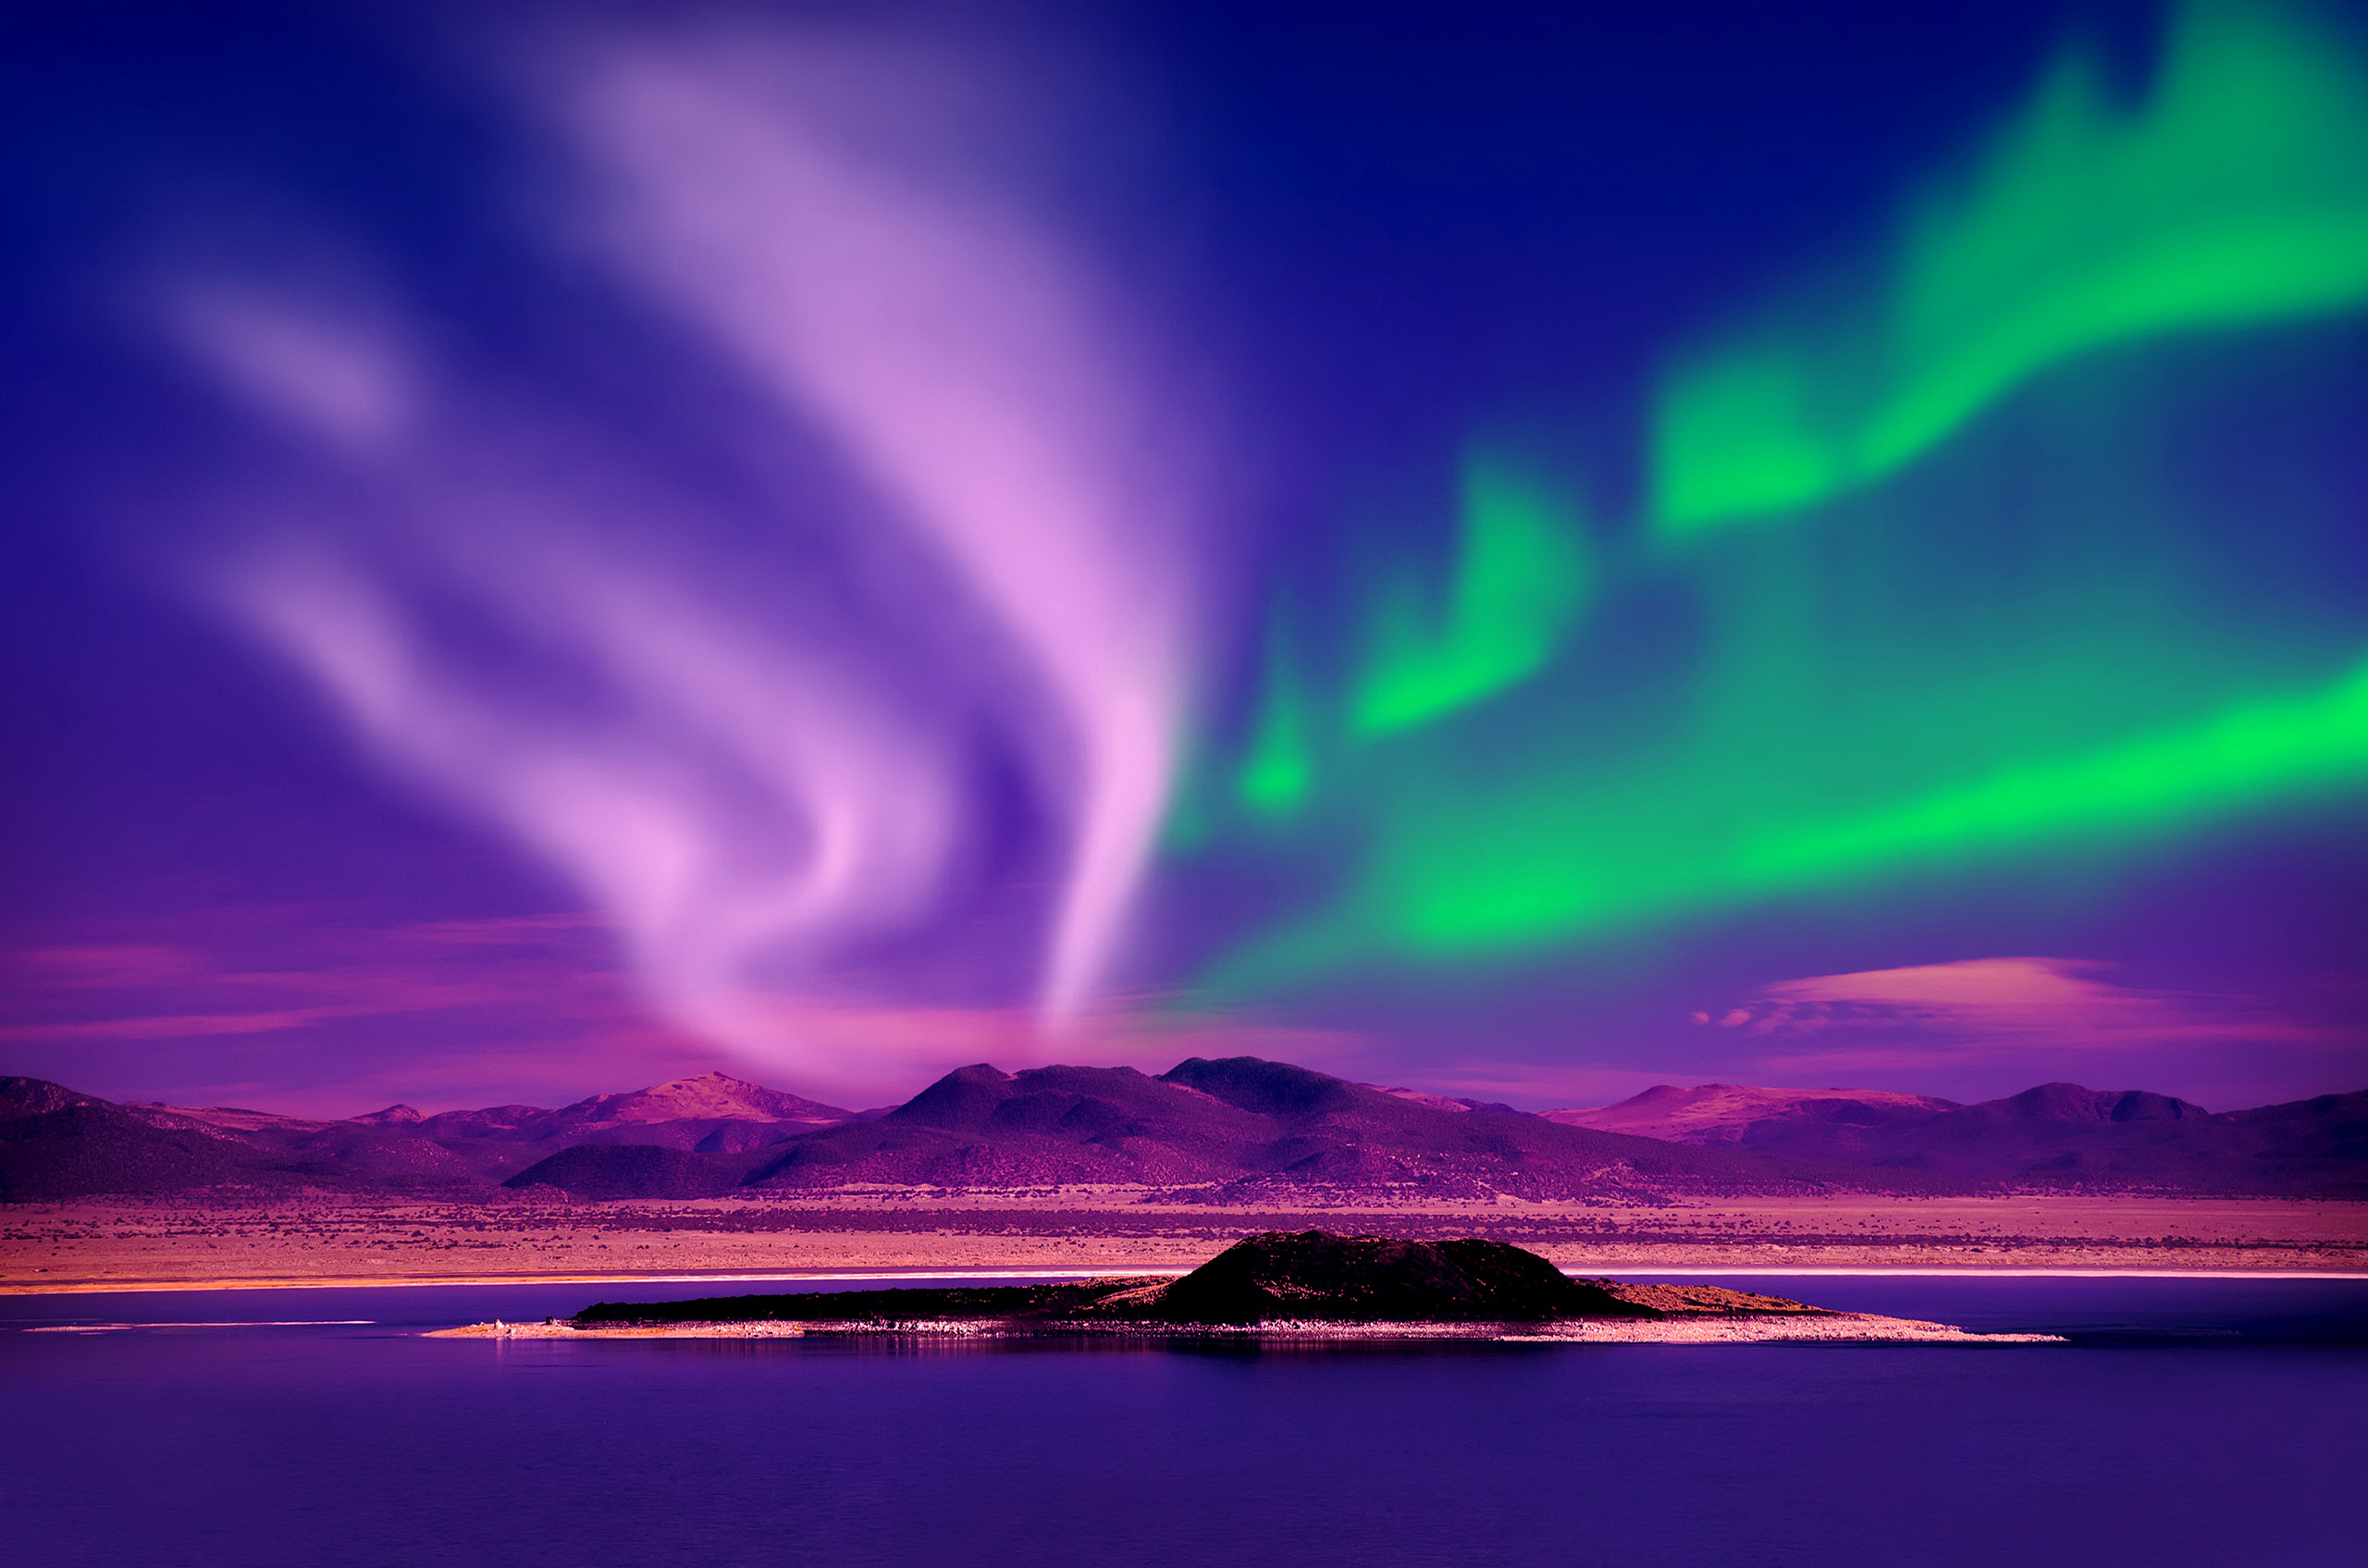 Northern Lights Wallpaper Hd: Free Download Northern Lights Wallpapers